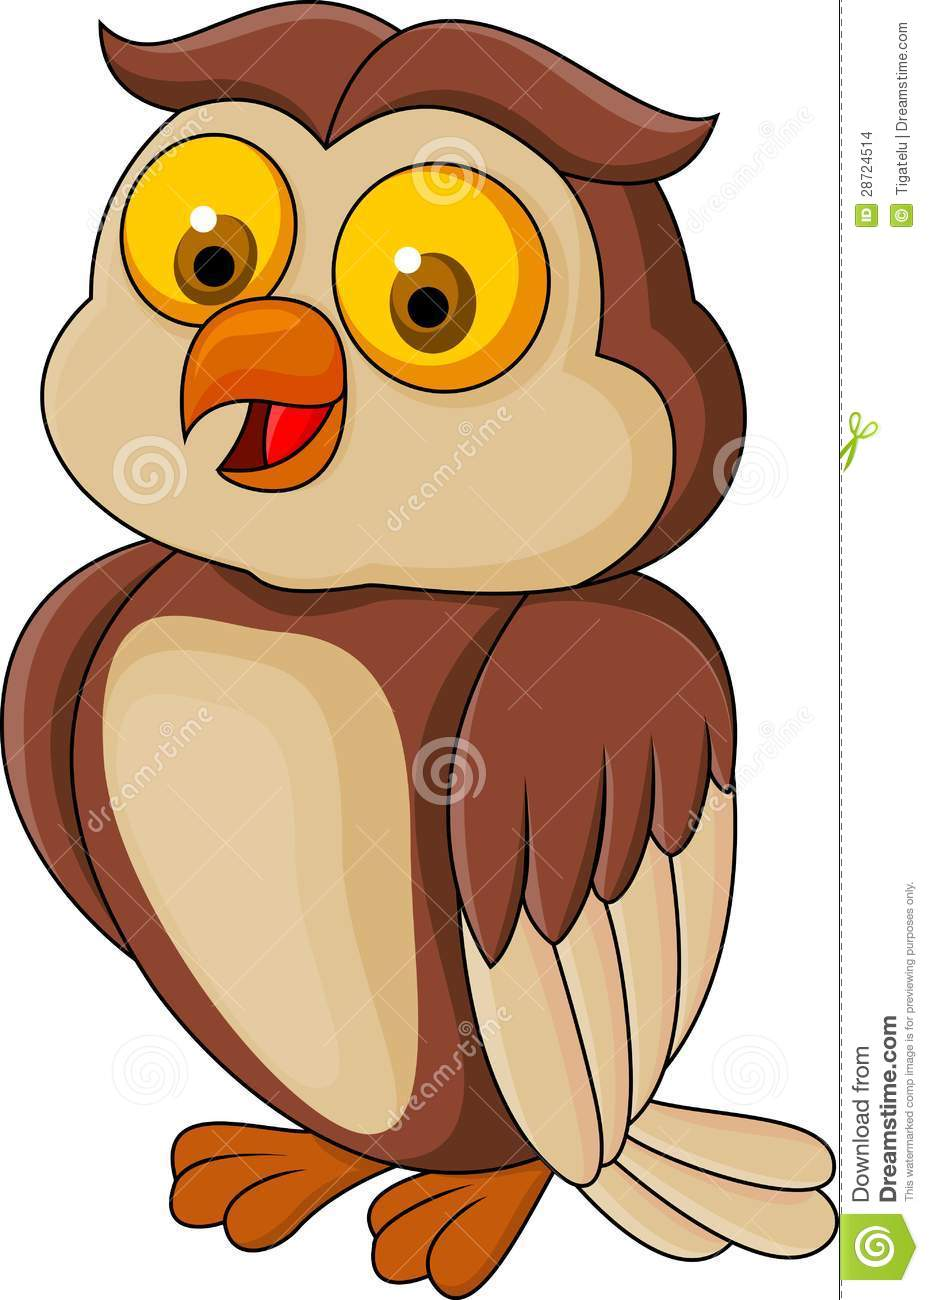 funny cartoon owls - photo #15